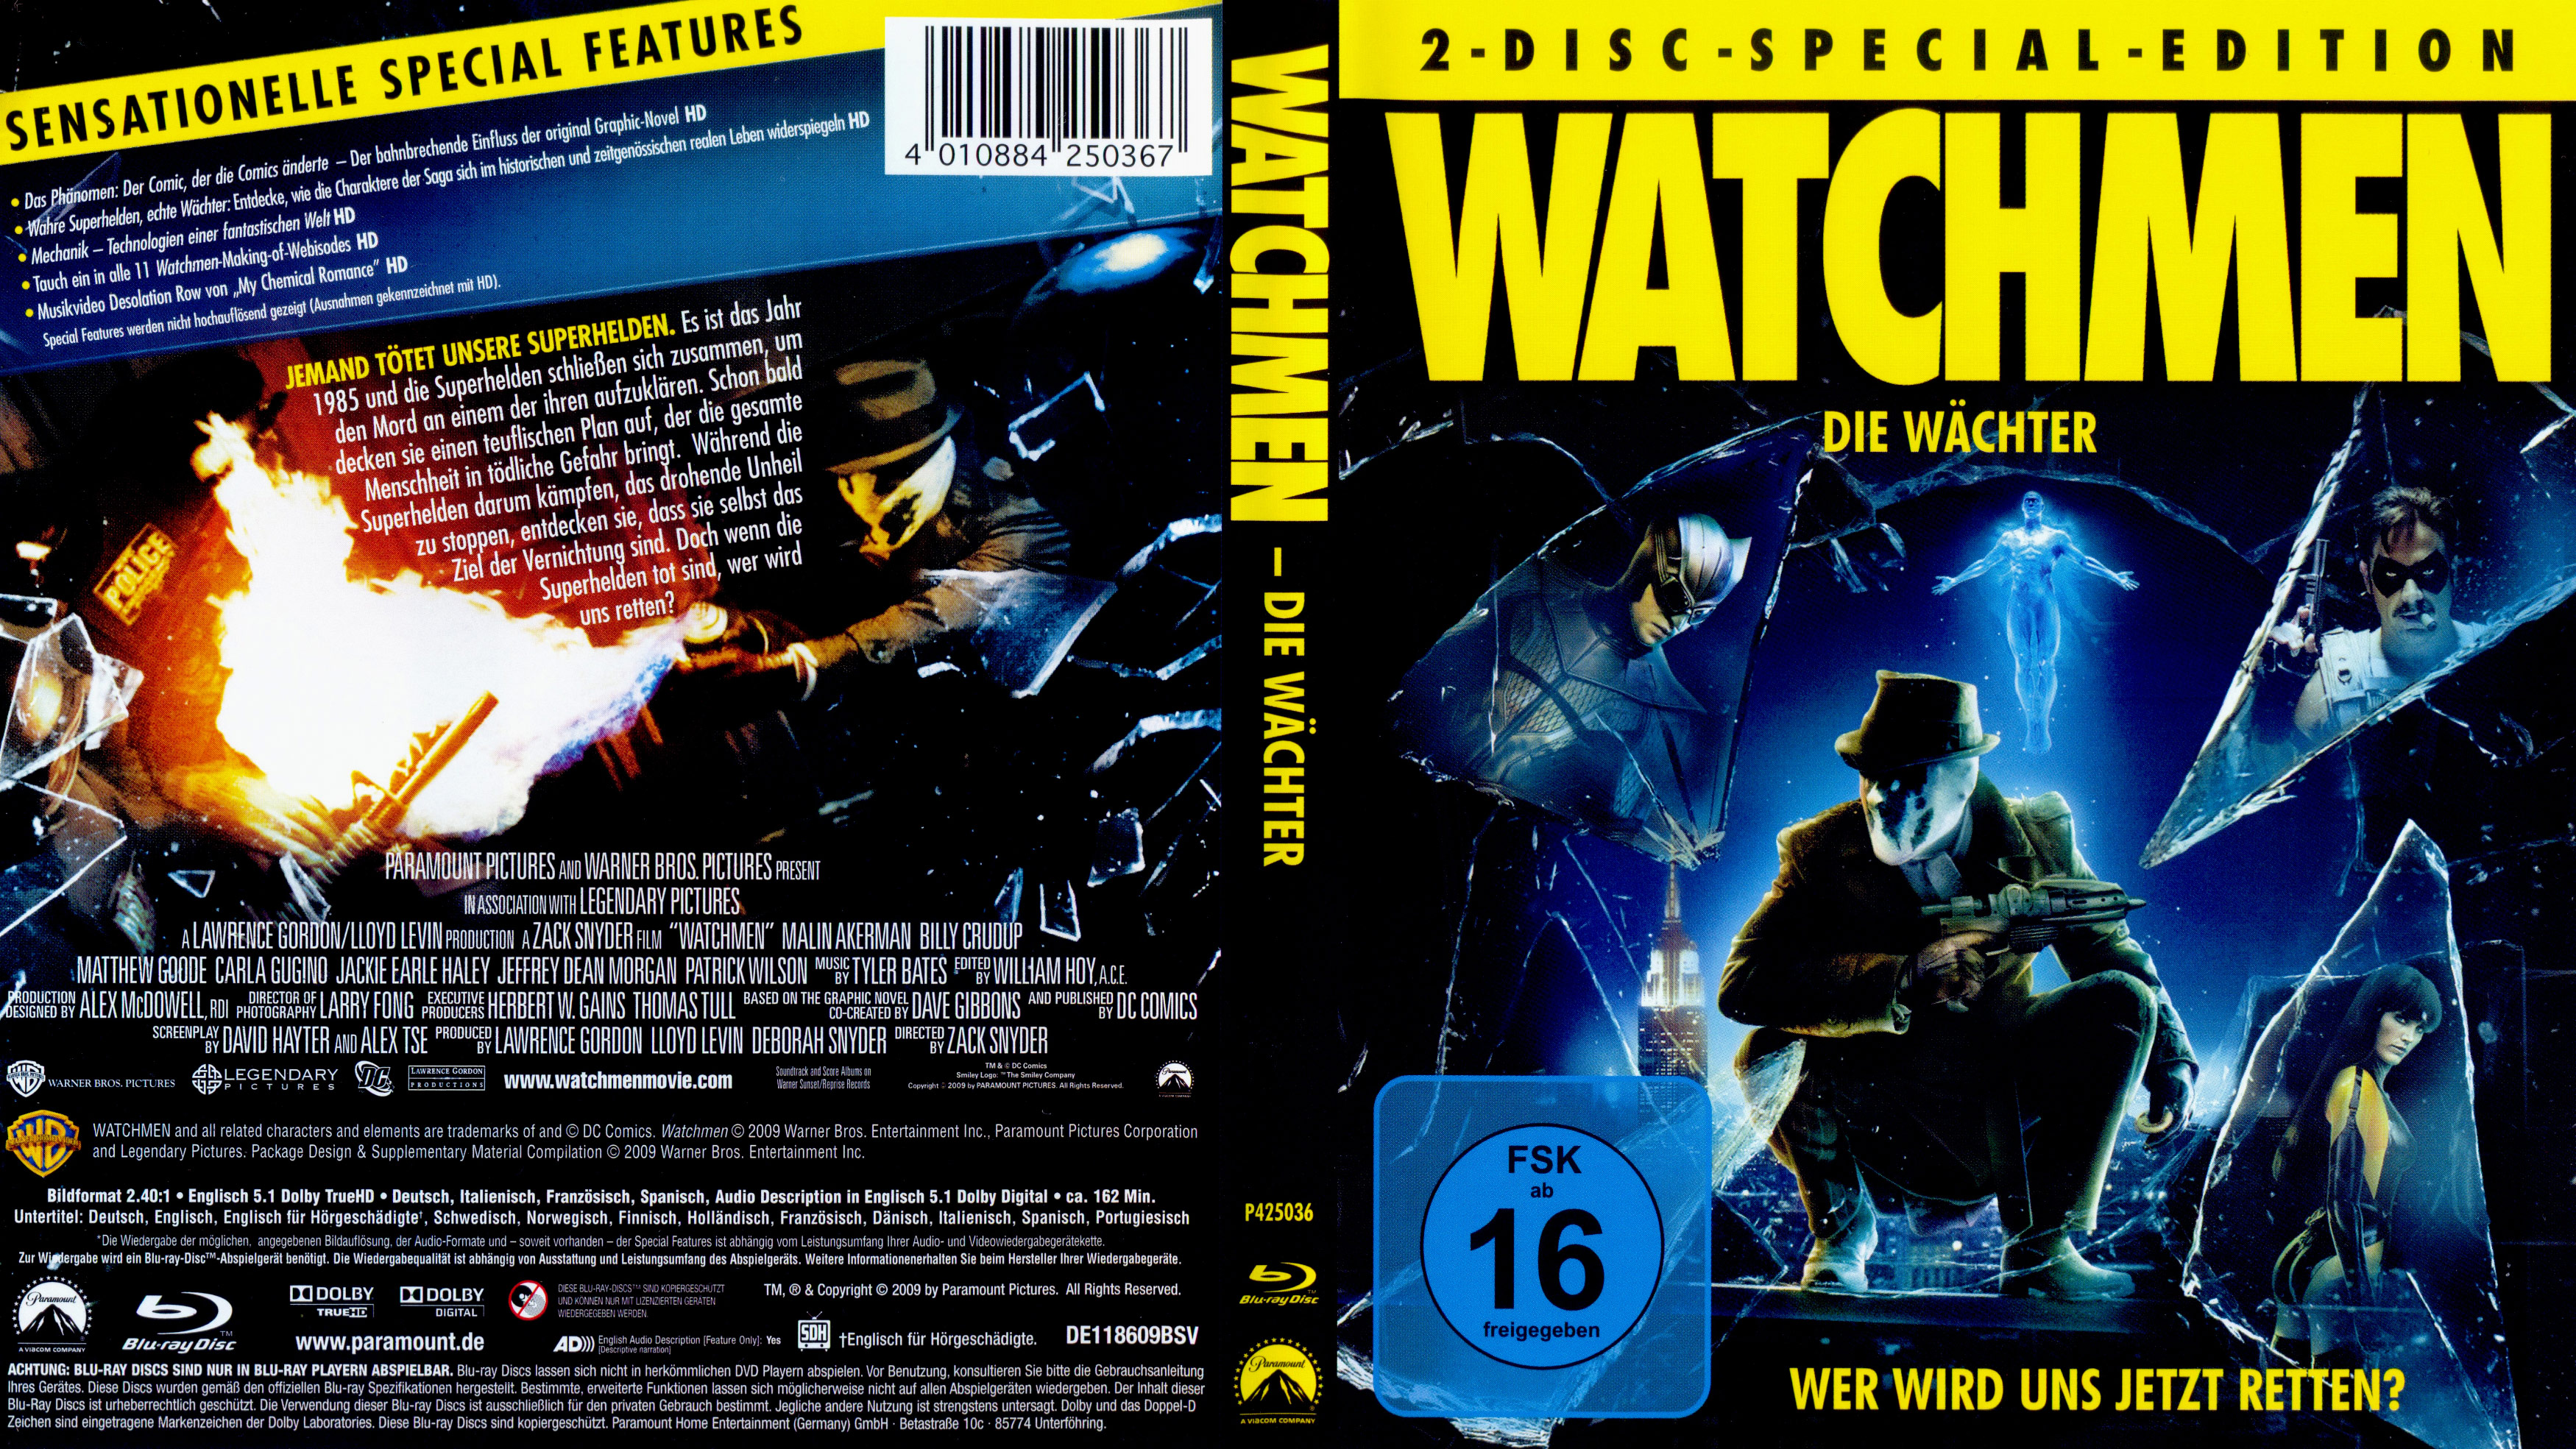 Watchmen Die Wachter 2 german blu ray cover | German DVD ...